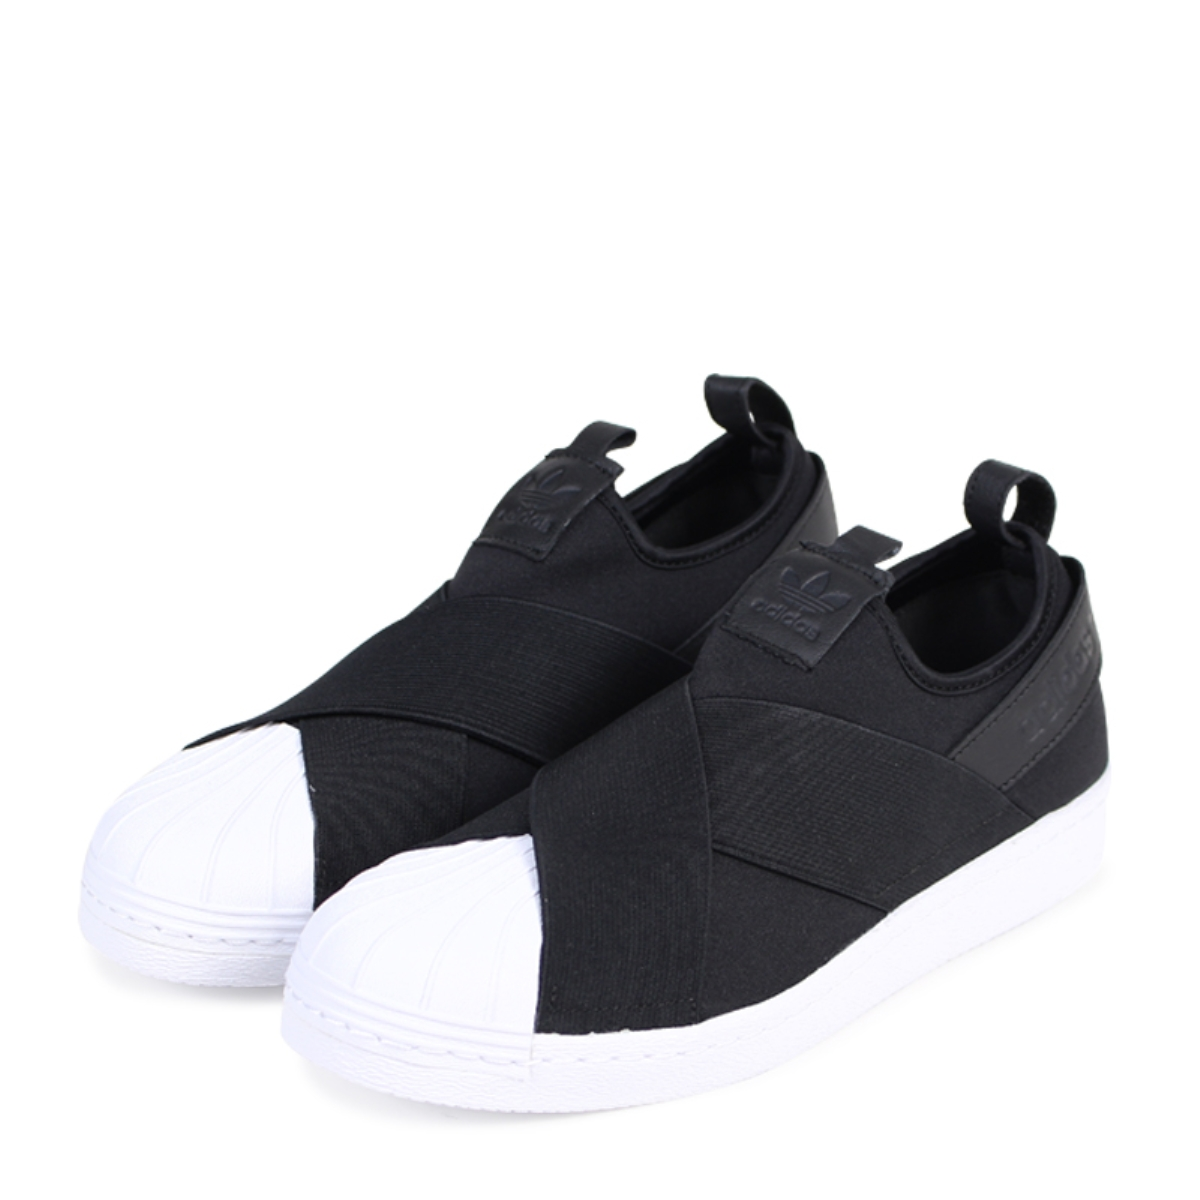 premium selection 472cd 106bf adidas Originals SUPERSTAR SLIP-ON Adidas superstar sneakers slip-ons men  gap Dis BZ0112 black originals 130 Shinnyu load 181